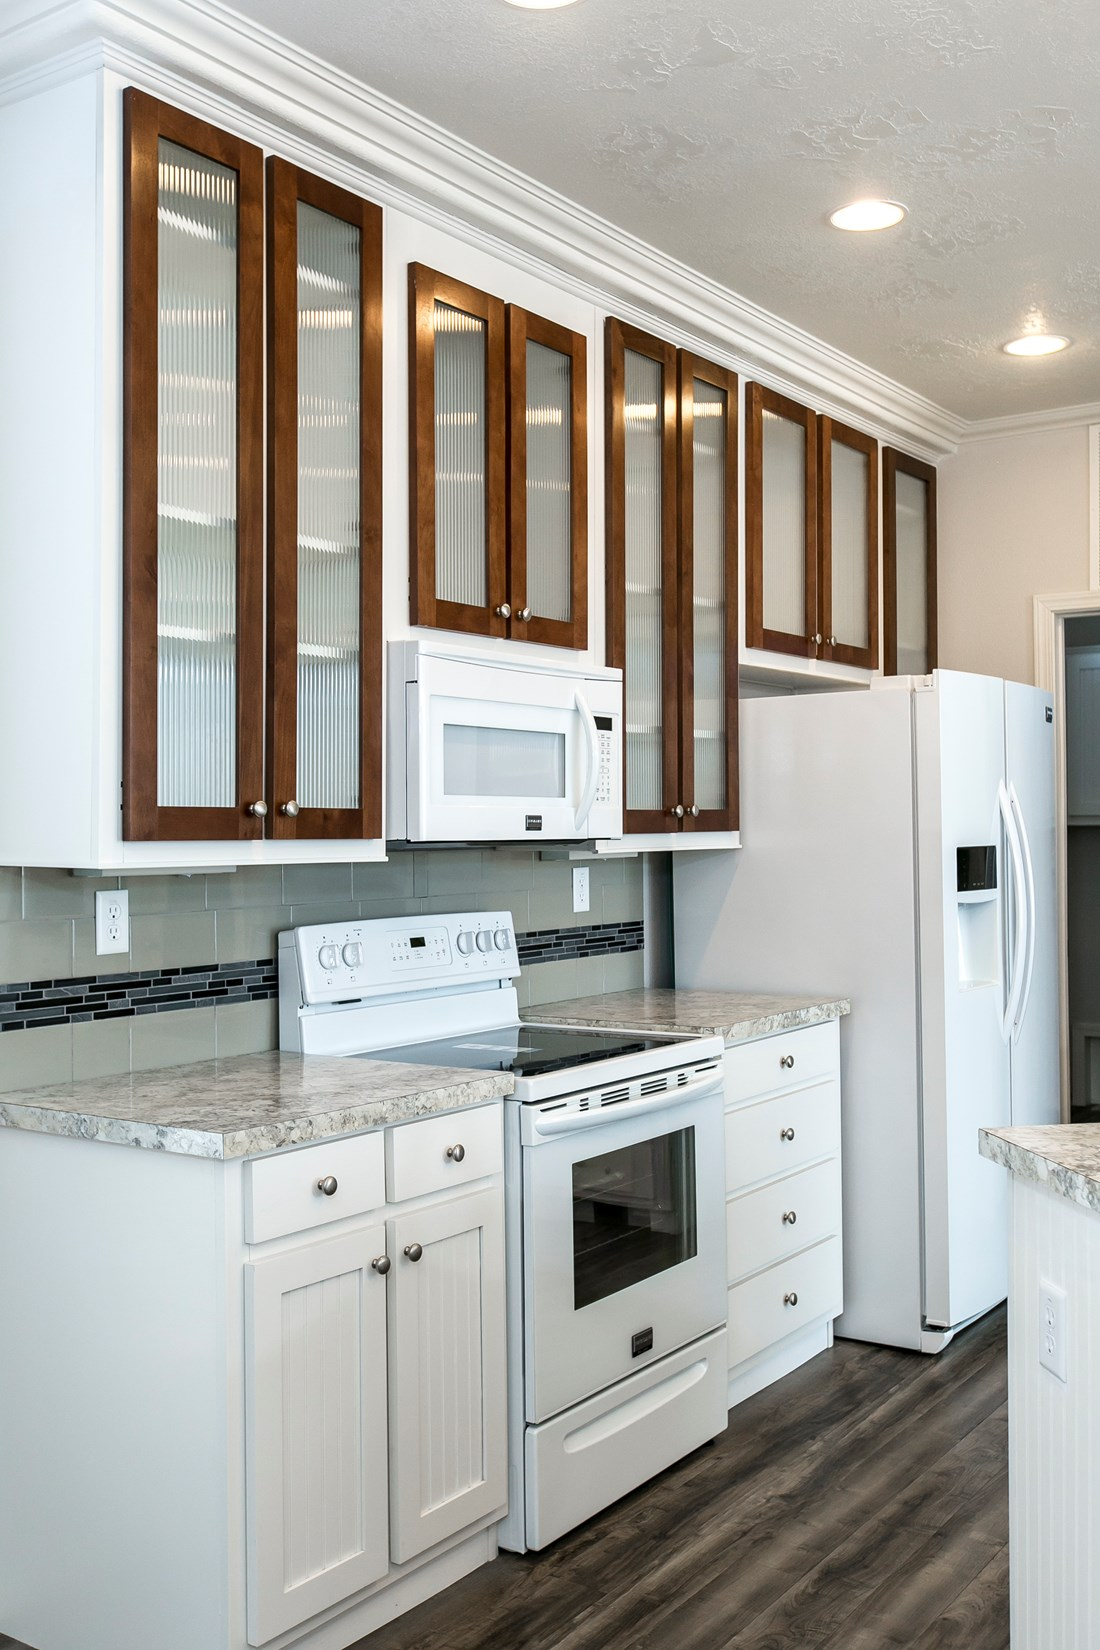 The ING681F EUCALYPTUS   (FULL) GW Kitchen. This Manufactured Mobile Home features 3 bedrooms and 2 baths.